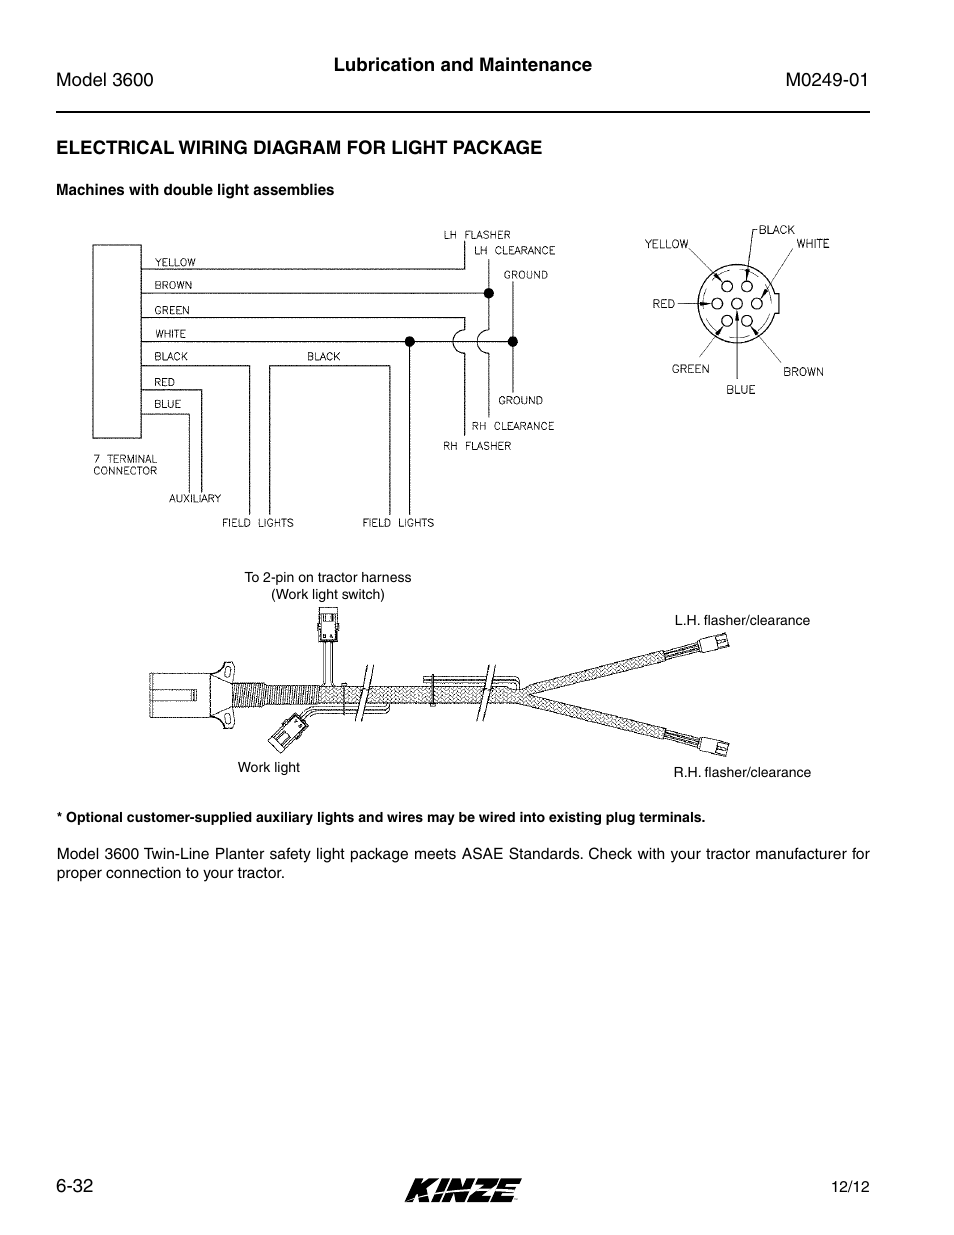 medium resolution of electrical wiring diagram for light package electrical wiring diagram for light package 32 kinze 3600 lift and rotate planter 70 cm rev